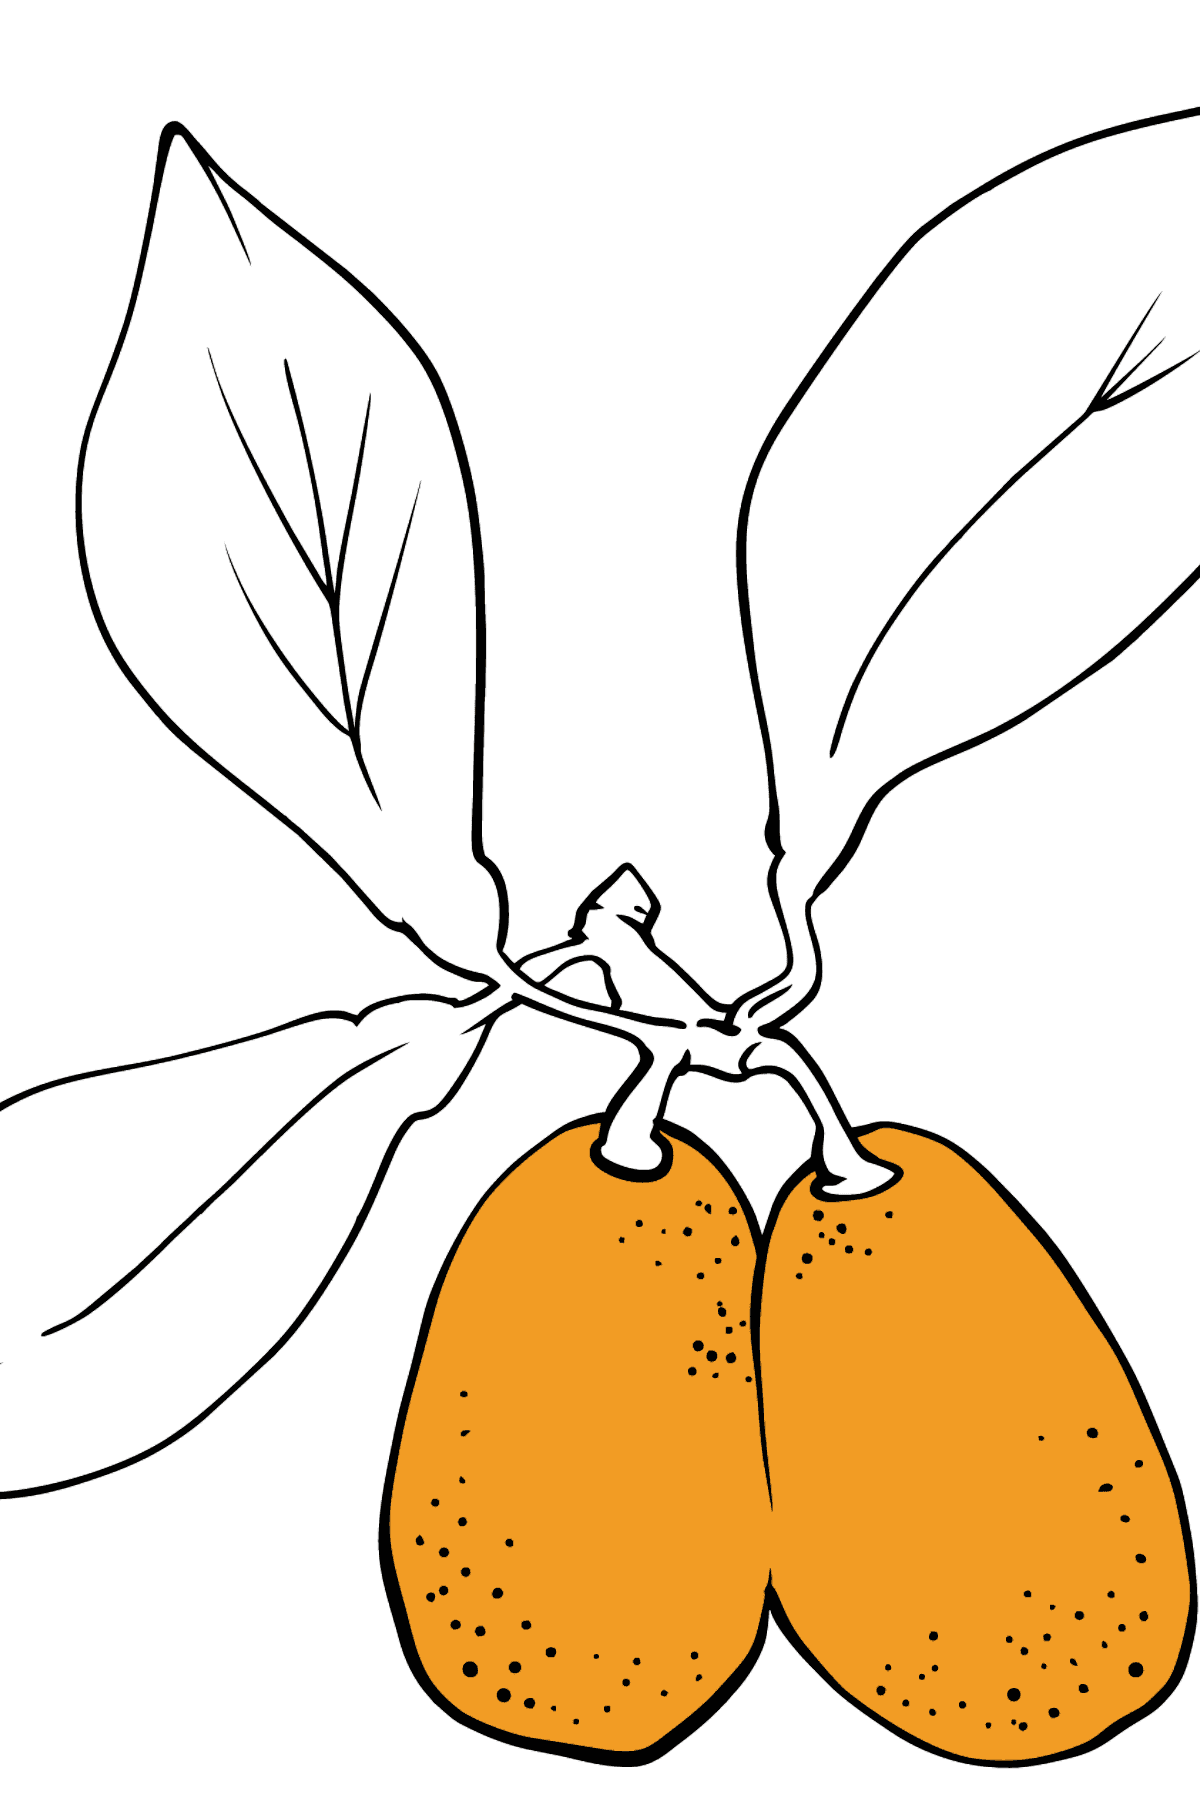 Kumquat coloring page - Coloring Pages for Kids